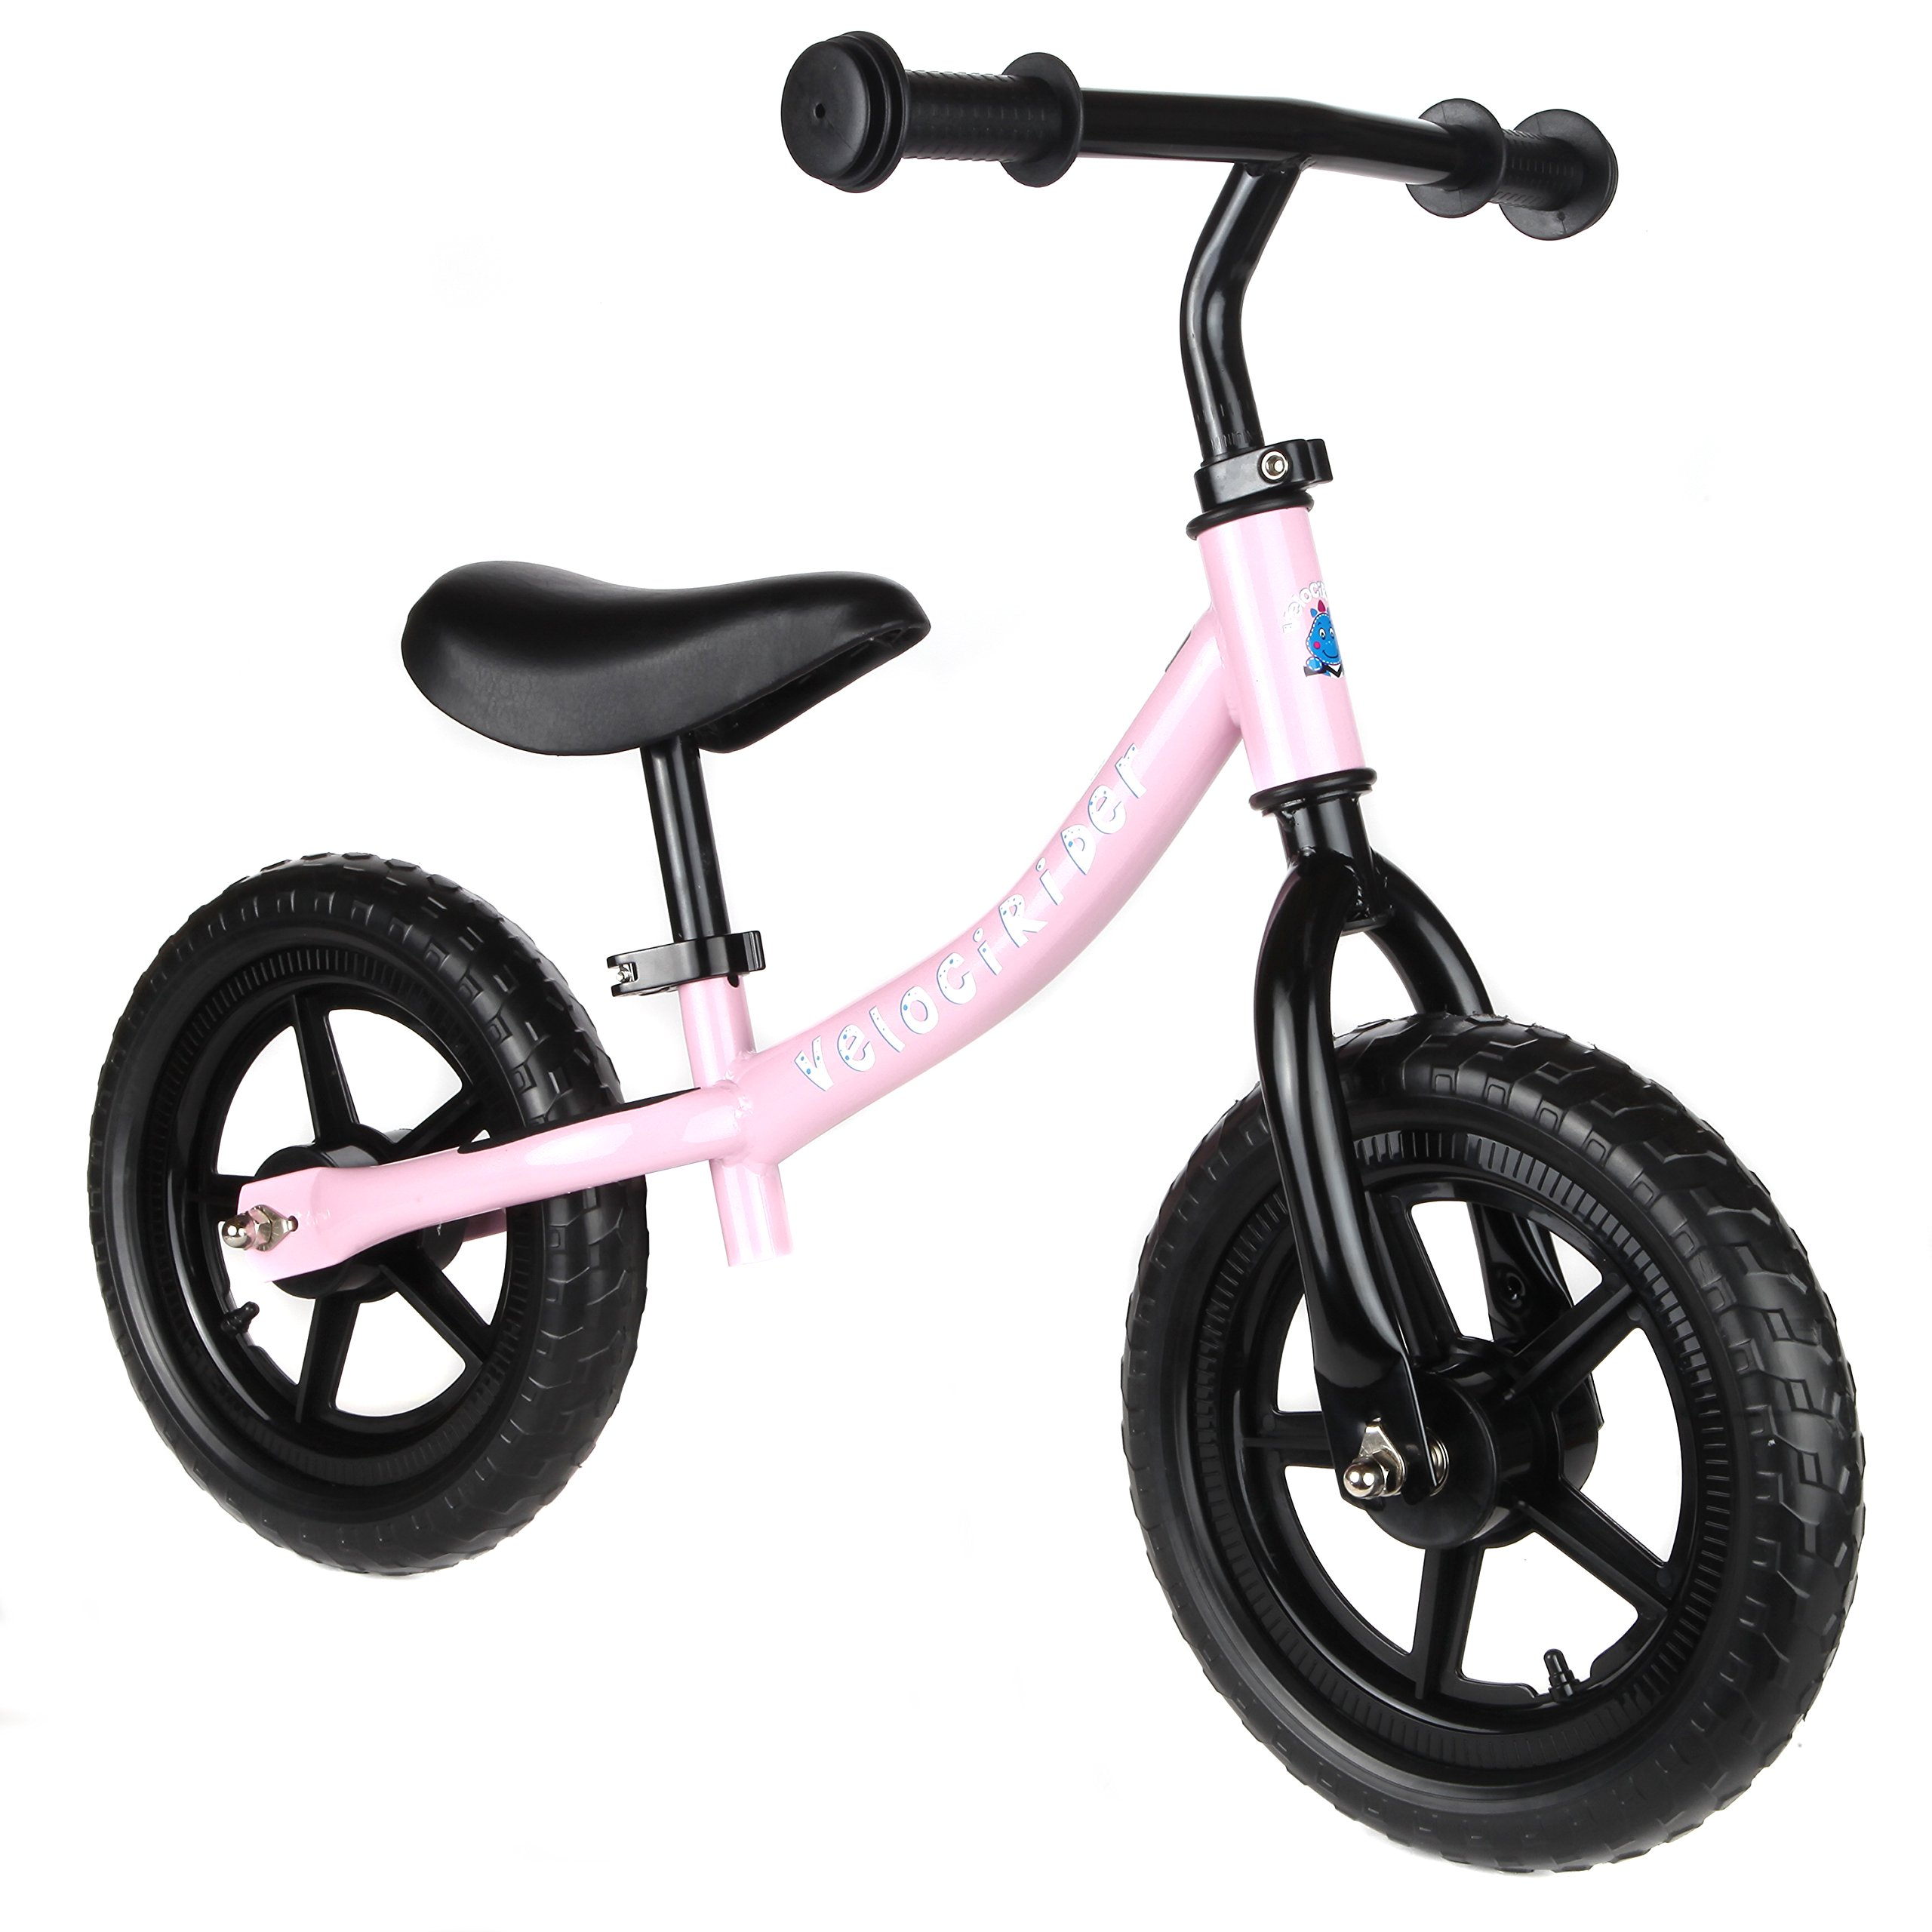 Best Balance Bike for Kids and Toddlers - Boys and Girls Self Balancing Bicycle with No Pedals is Perfect for Training Your 18 Month Old Child - Classic Run Bikes for Balance Training (Cotton Candy)